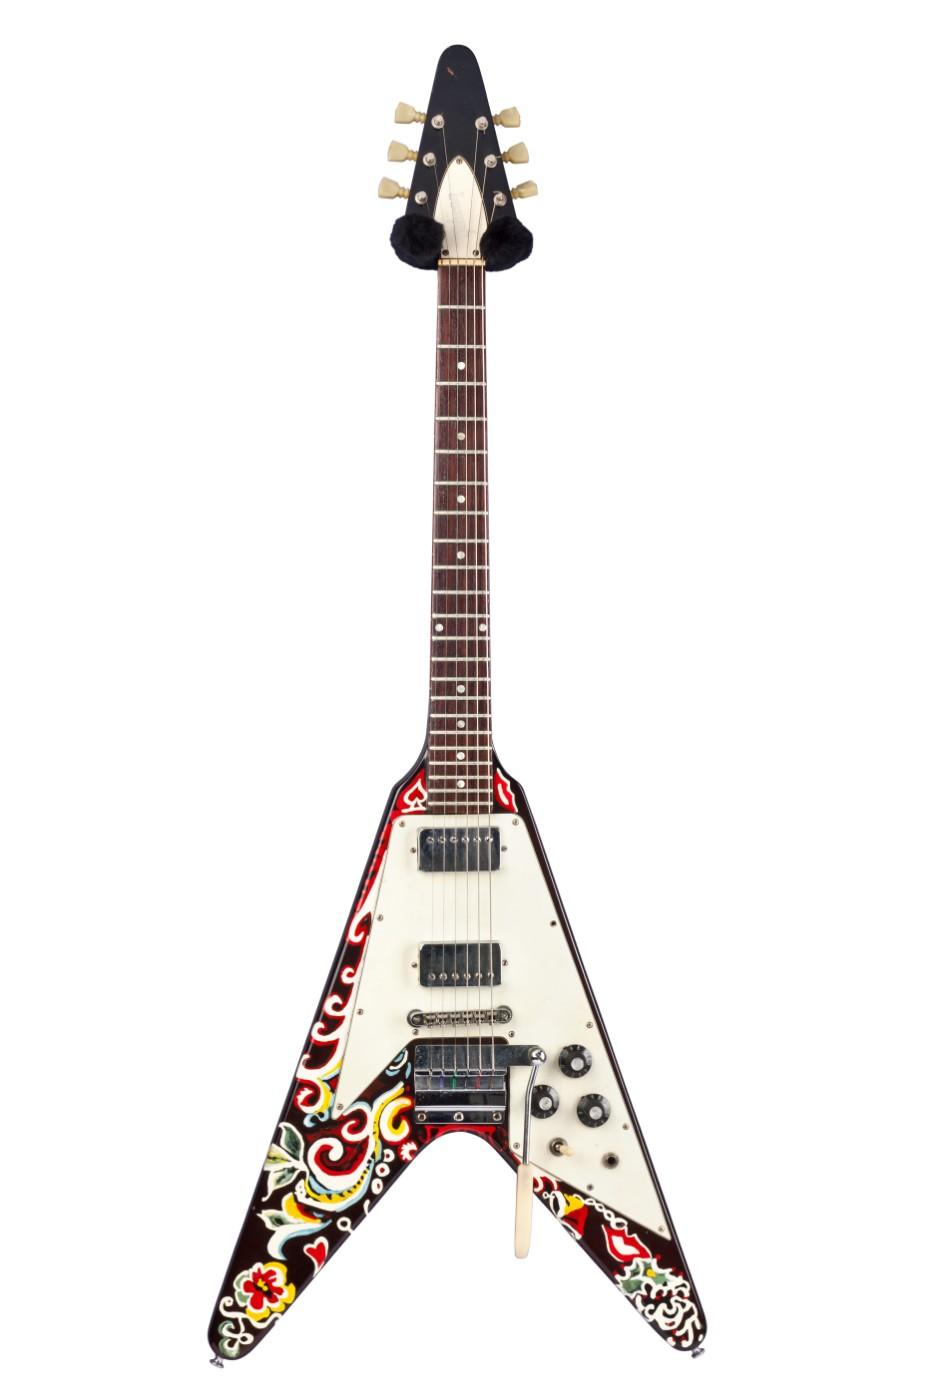 Jimi Hendrix owned and played this Gibson Flying V extensively from 1967 to 1969. Hendrix painted the instrument himself using nail polish.